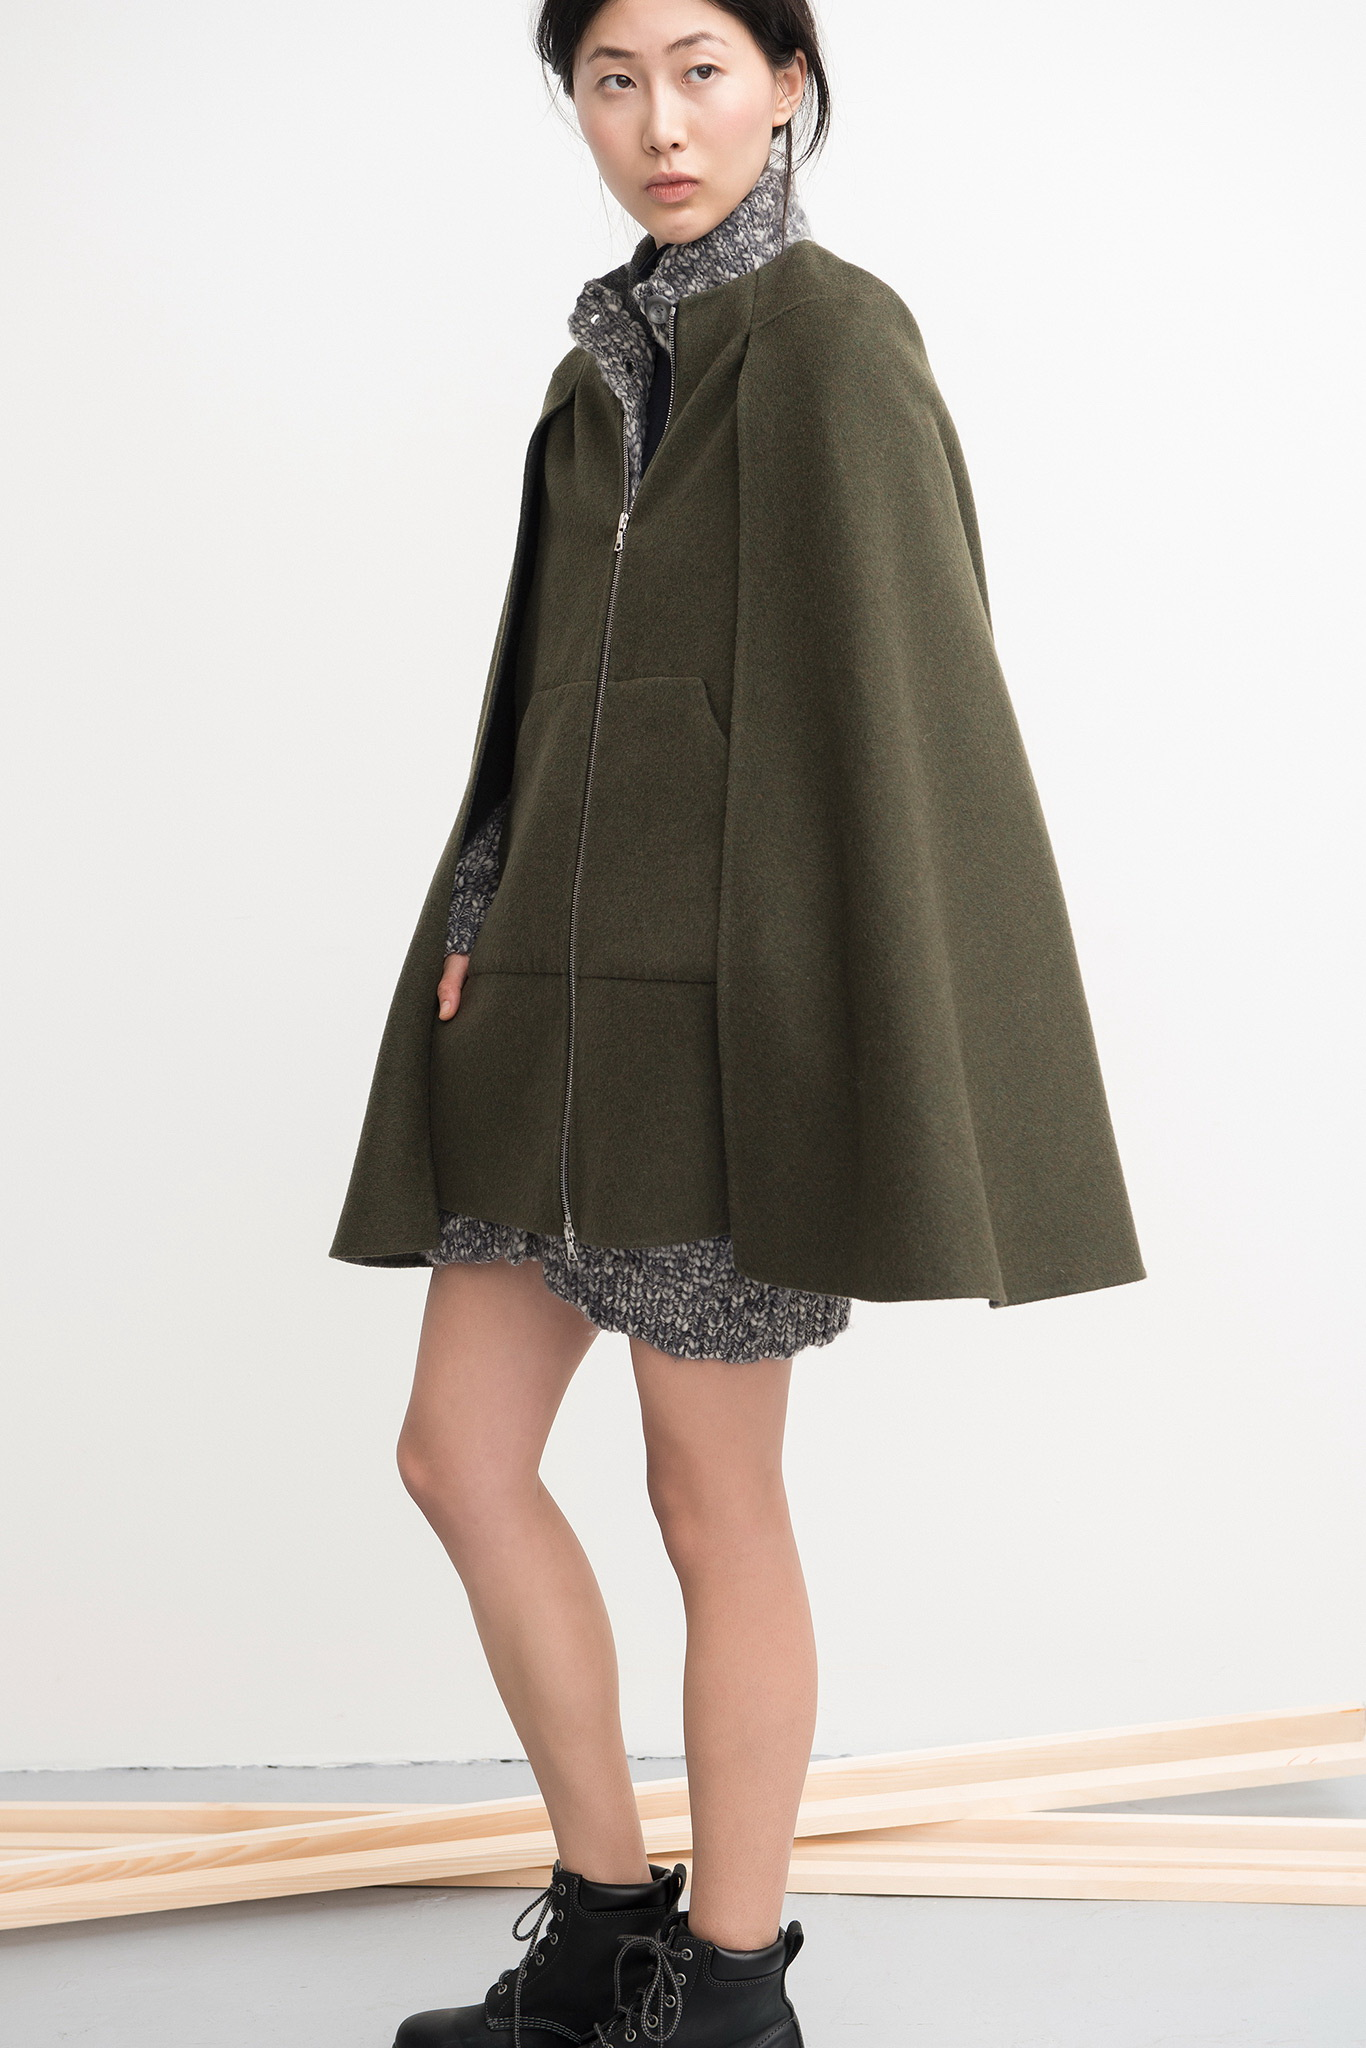 cape coat 25 cape coats to wear this fall-winter 2017 GTOQIPR